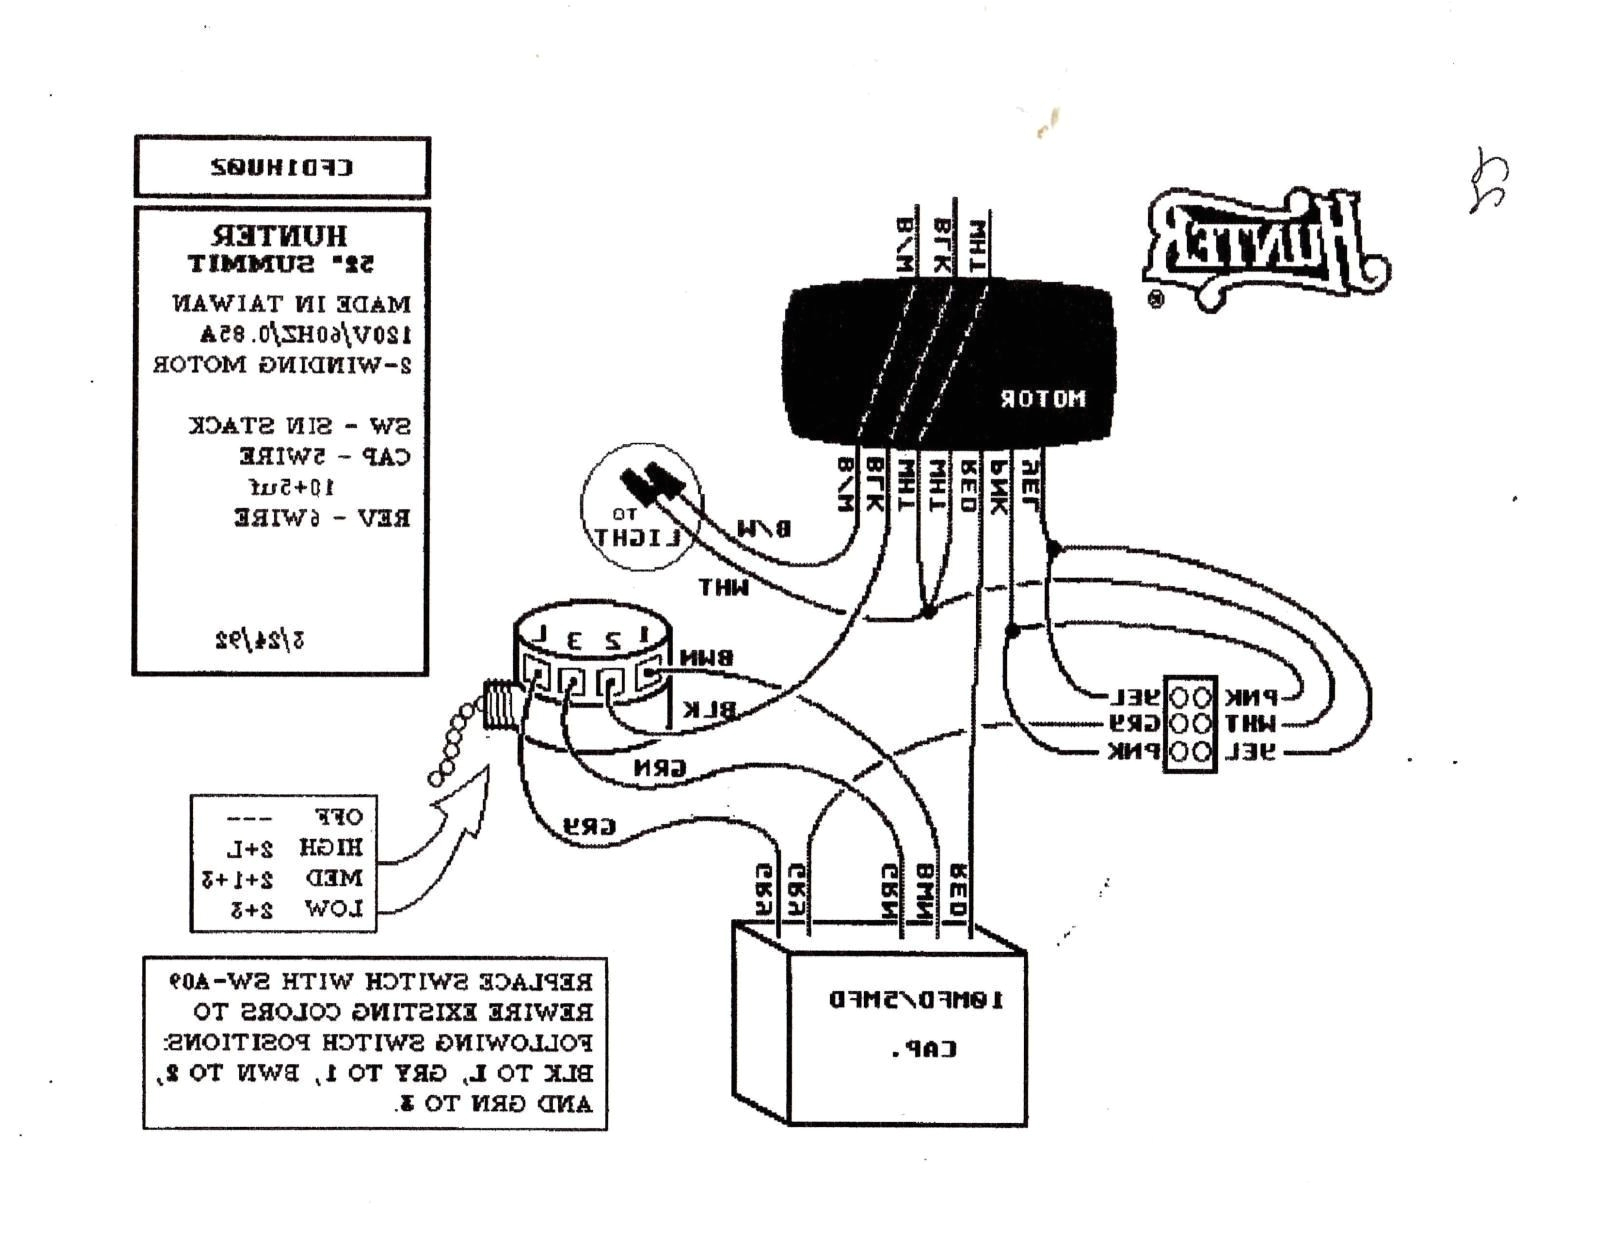 Ceiling Fan Diagram Wiring Thomasville Ceiling Fan Wiring Diagram Wiring Diagram View